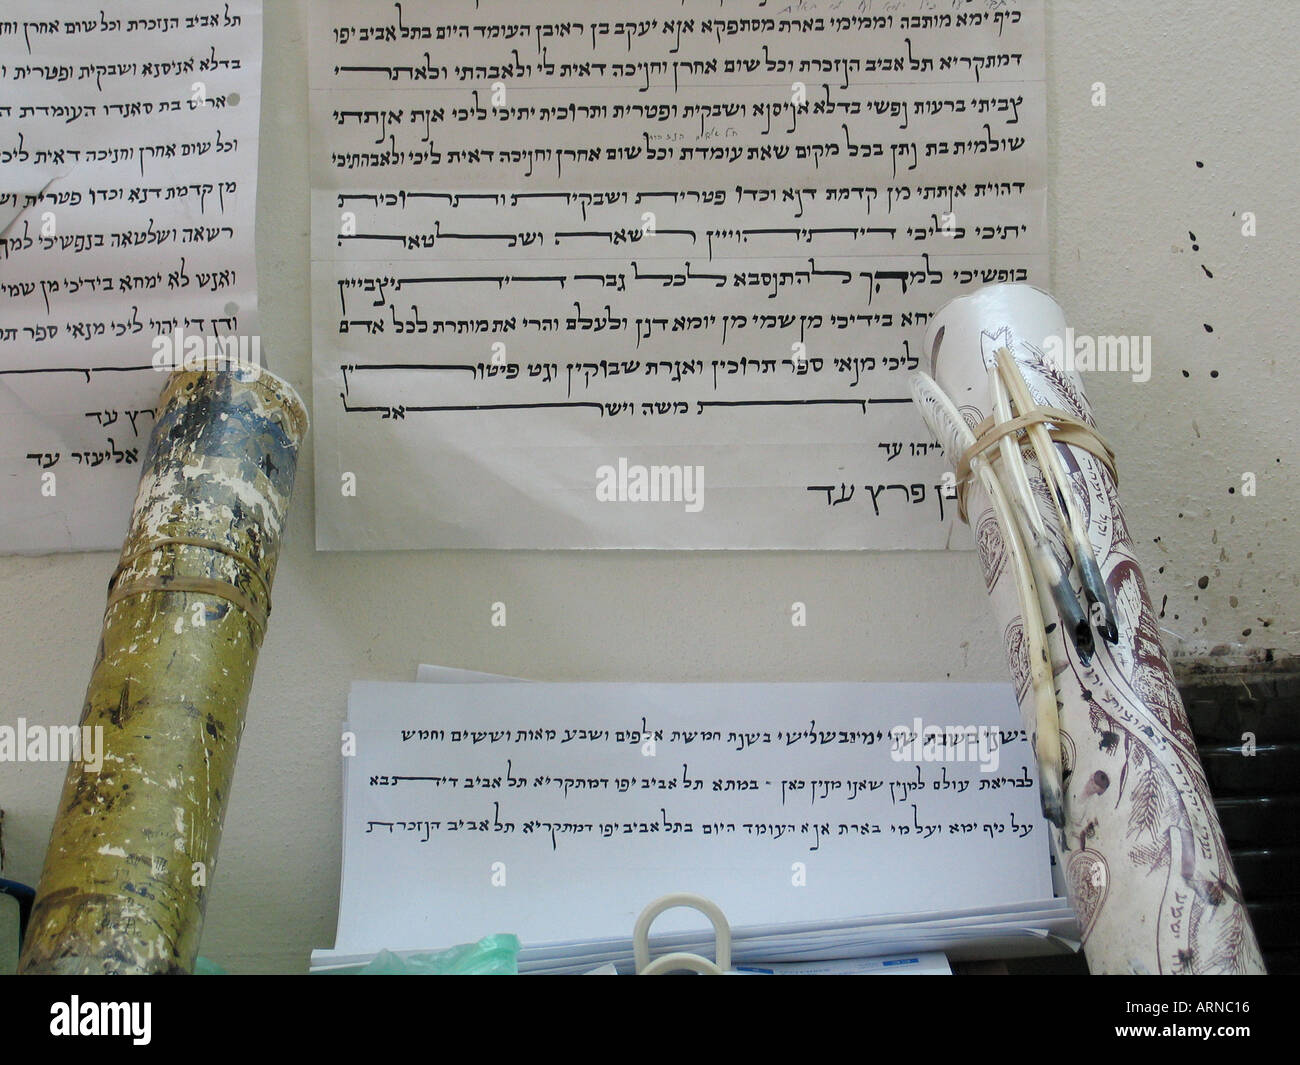 Parchment used in writing traditional Jewish divorce document - Stock Image